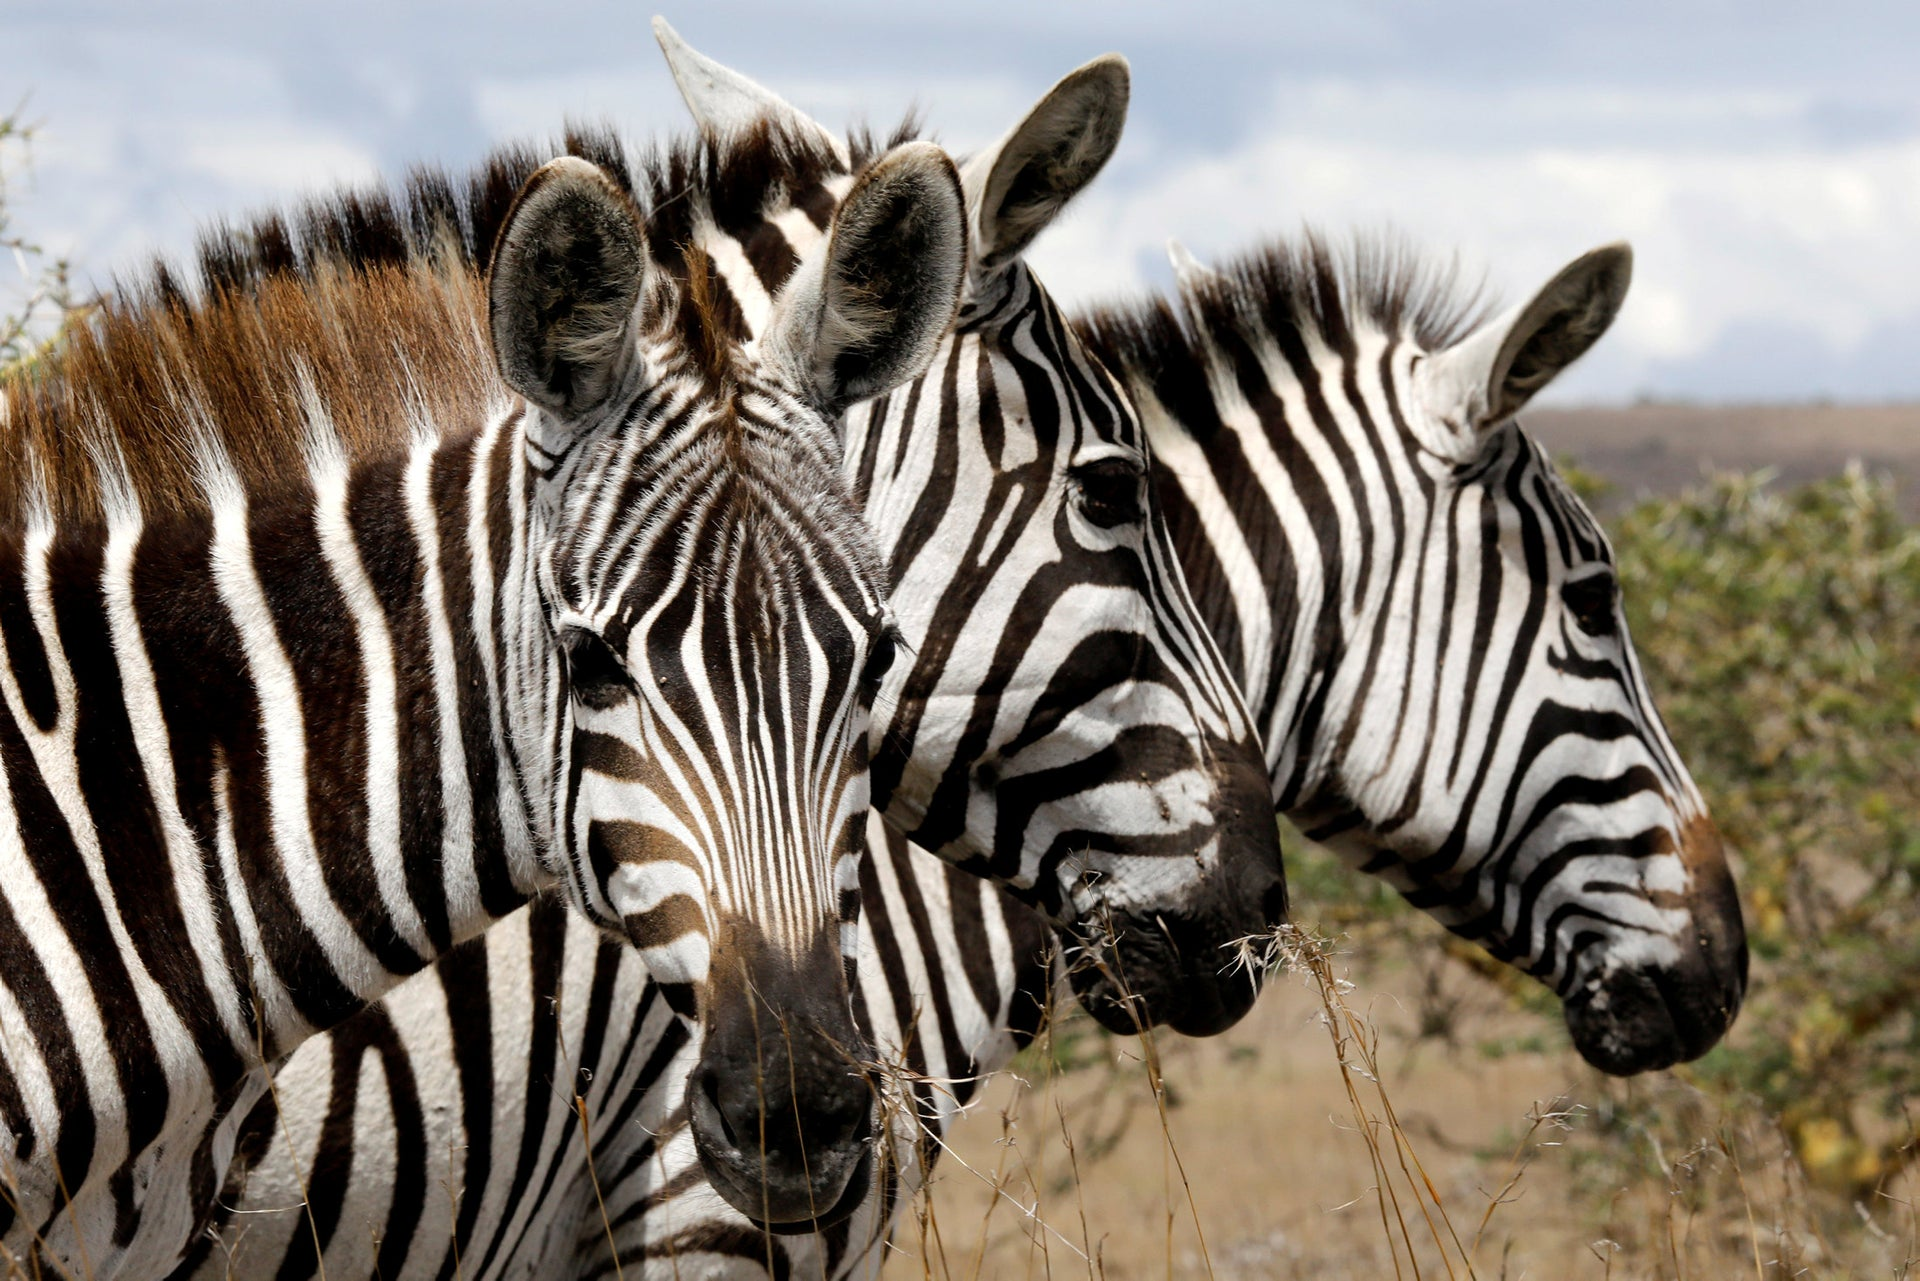 Stripes confuse the eyes of flies. Zebras at the Nairobi National Park, near Nairobi, Kenya, December 3, 2018.